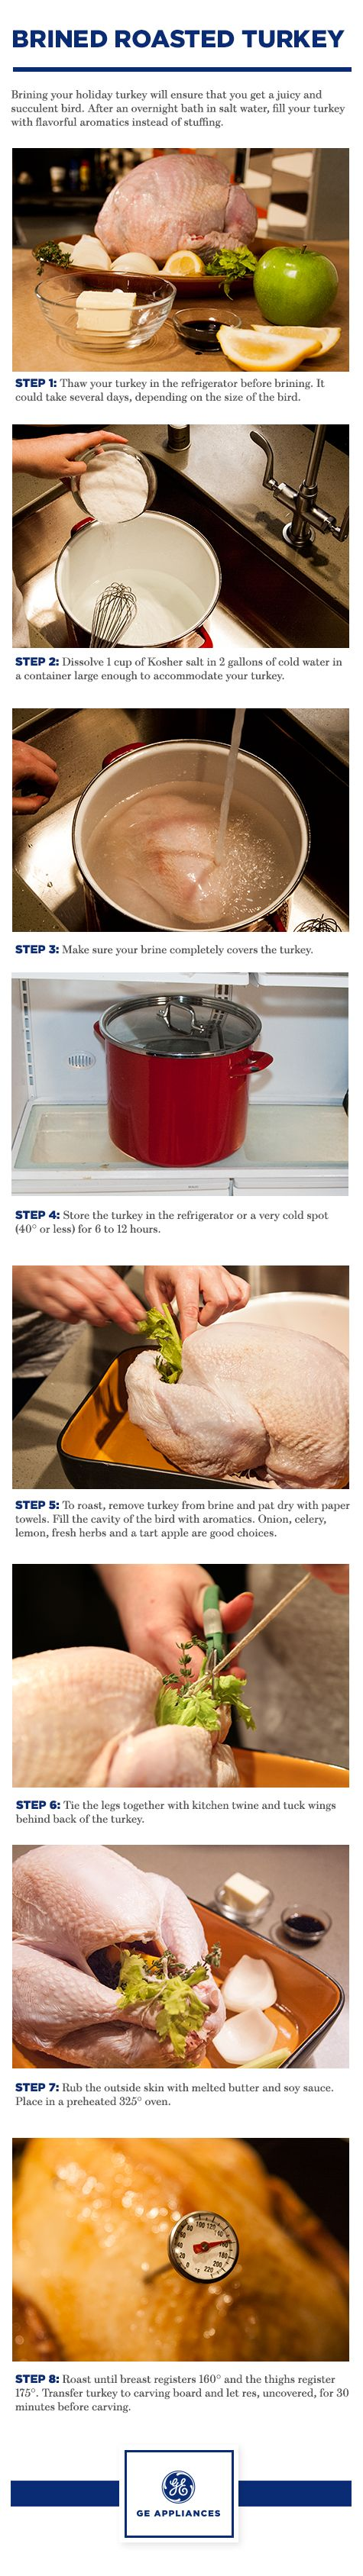 Brining your holiday turkey will ensure that you get a juicy and succulent bird this Thanksgiving. Follow our step-by-step process to wow your guests.